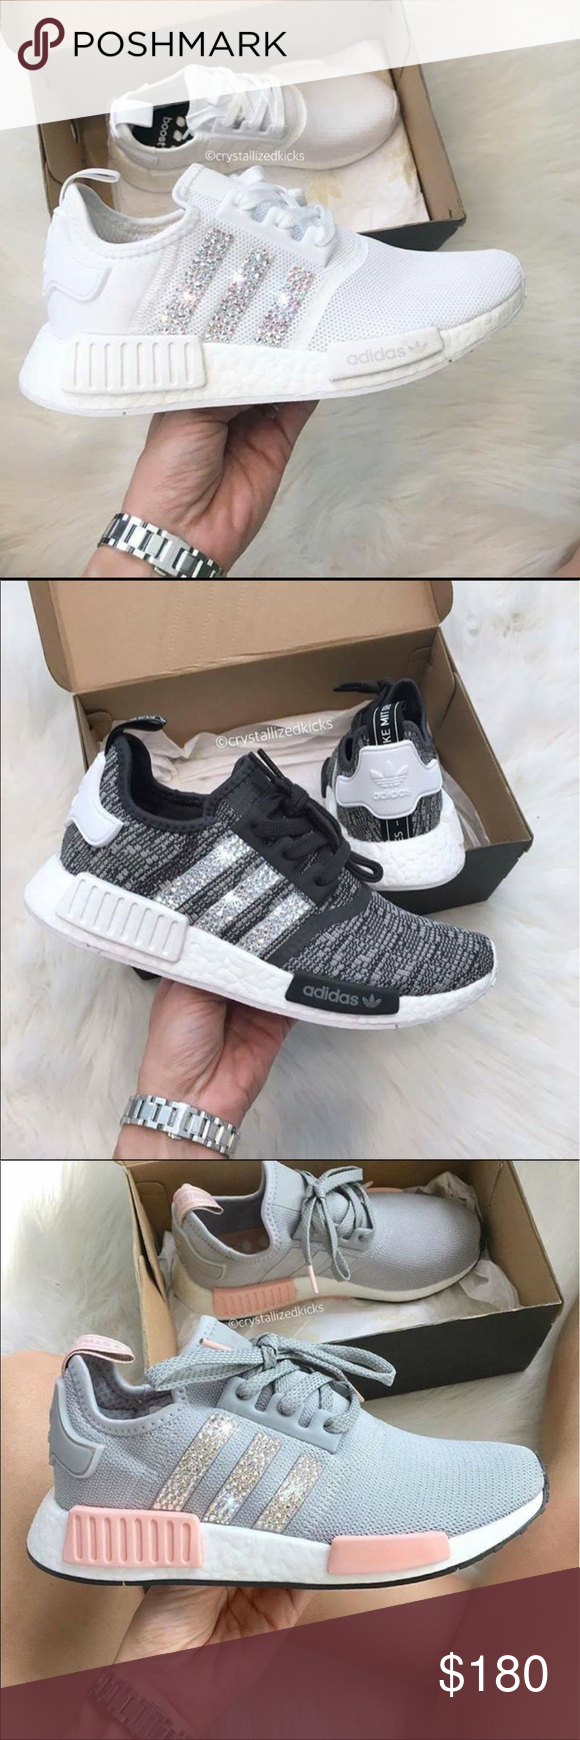 Adidas Women Shoes - Nmd Bling Bling!! Ladies!!! Hurry and grab your pair  while supplies last!! Adidas Shoes Athletic Shoes - We reveal the news in  sneakers ... 22bbfa23a8a5